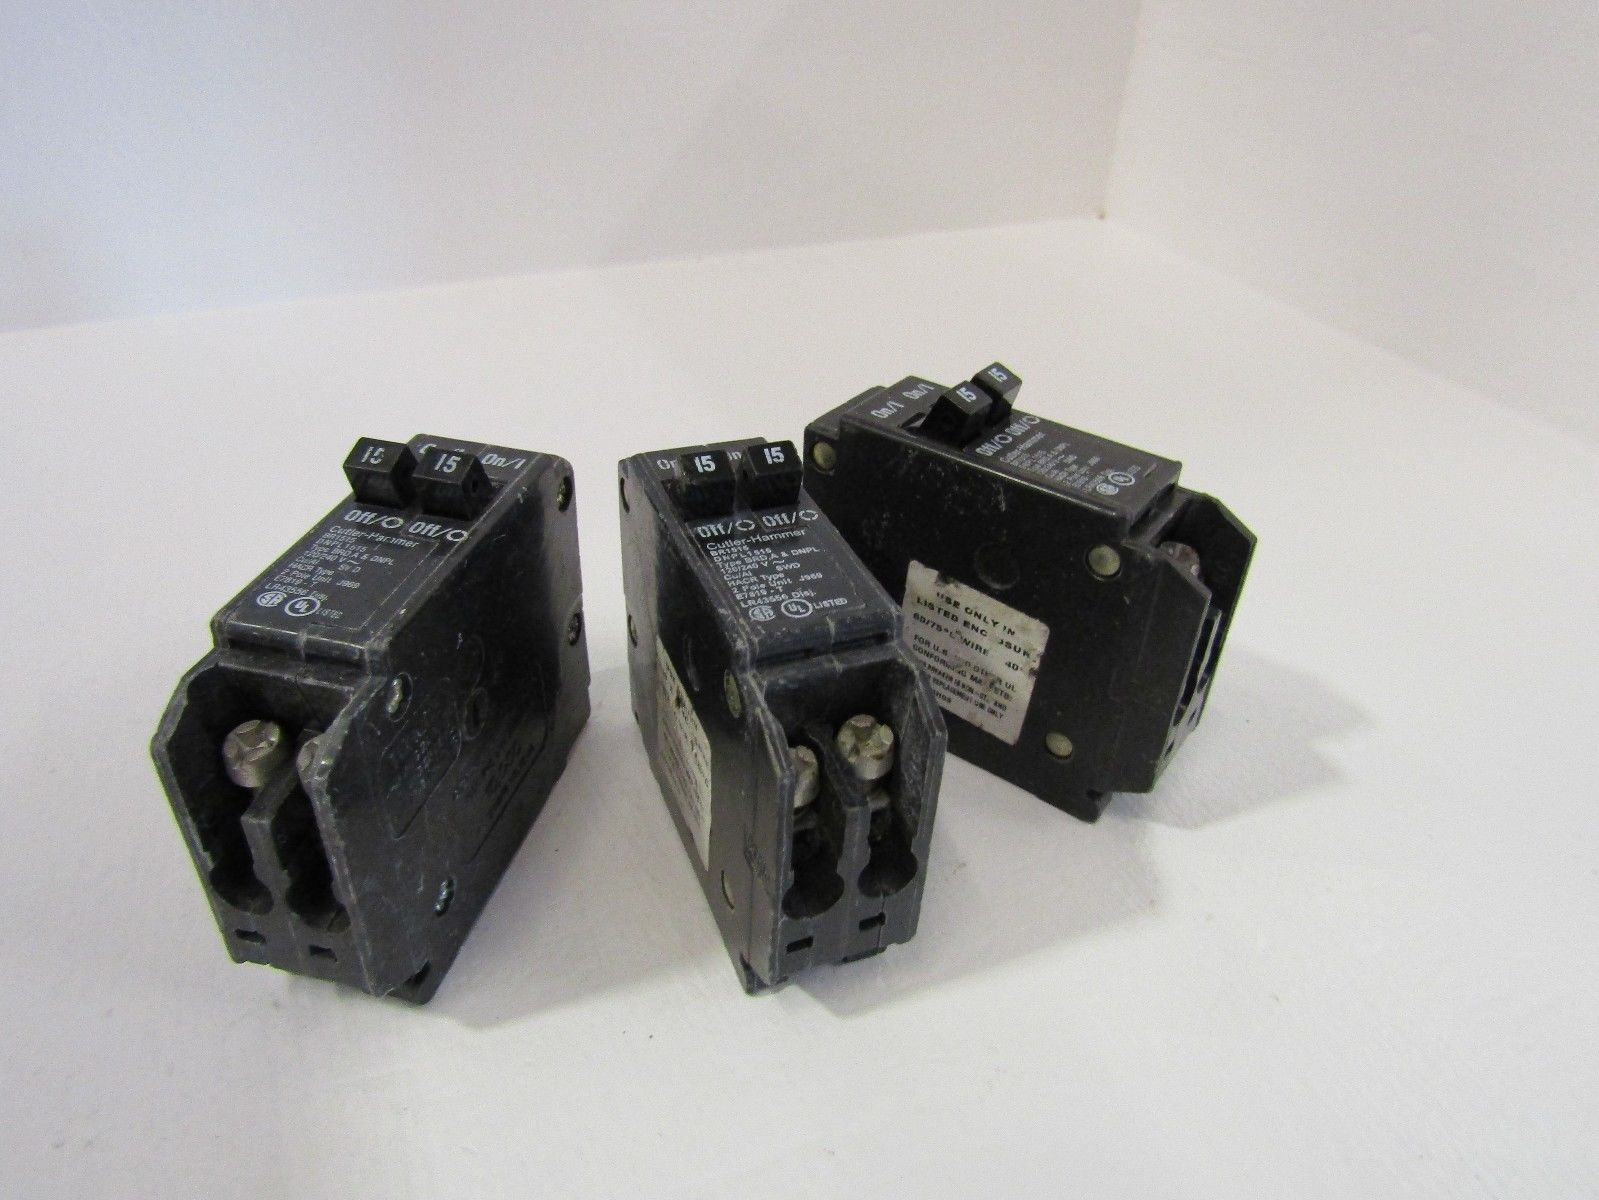 Cutler Hammer Type Bab2015 Circuit Breaker 2 Pole 15 Amp Auto Eaton Bab1020 Quicklagr 20 120 New Lot Of 4 Br1515 Volt